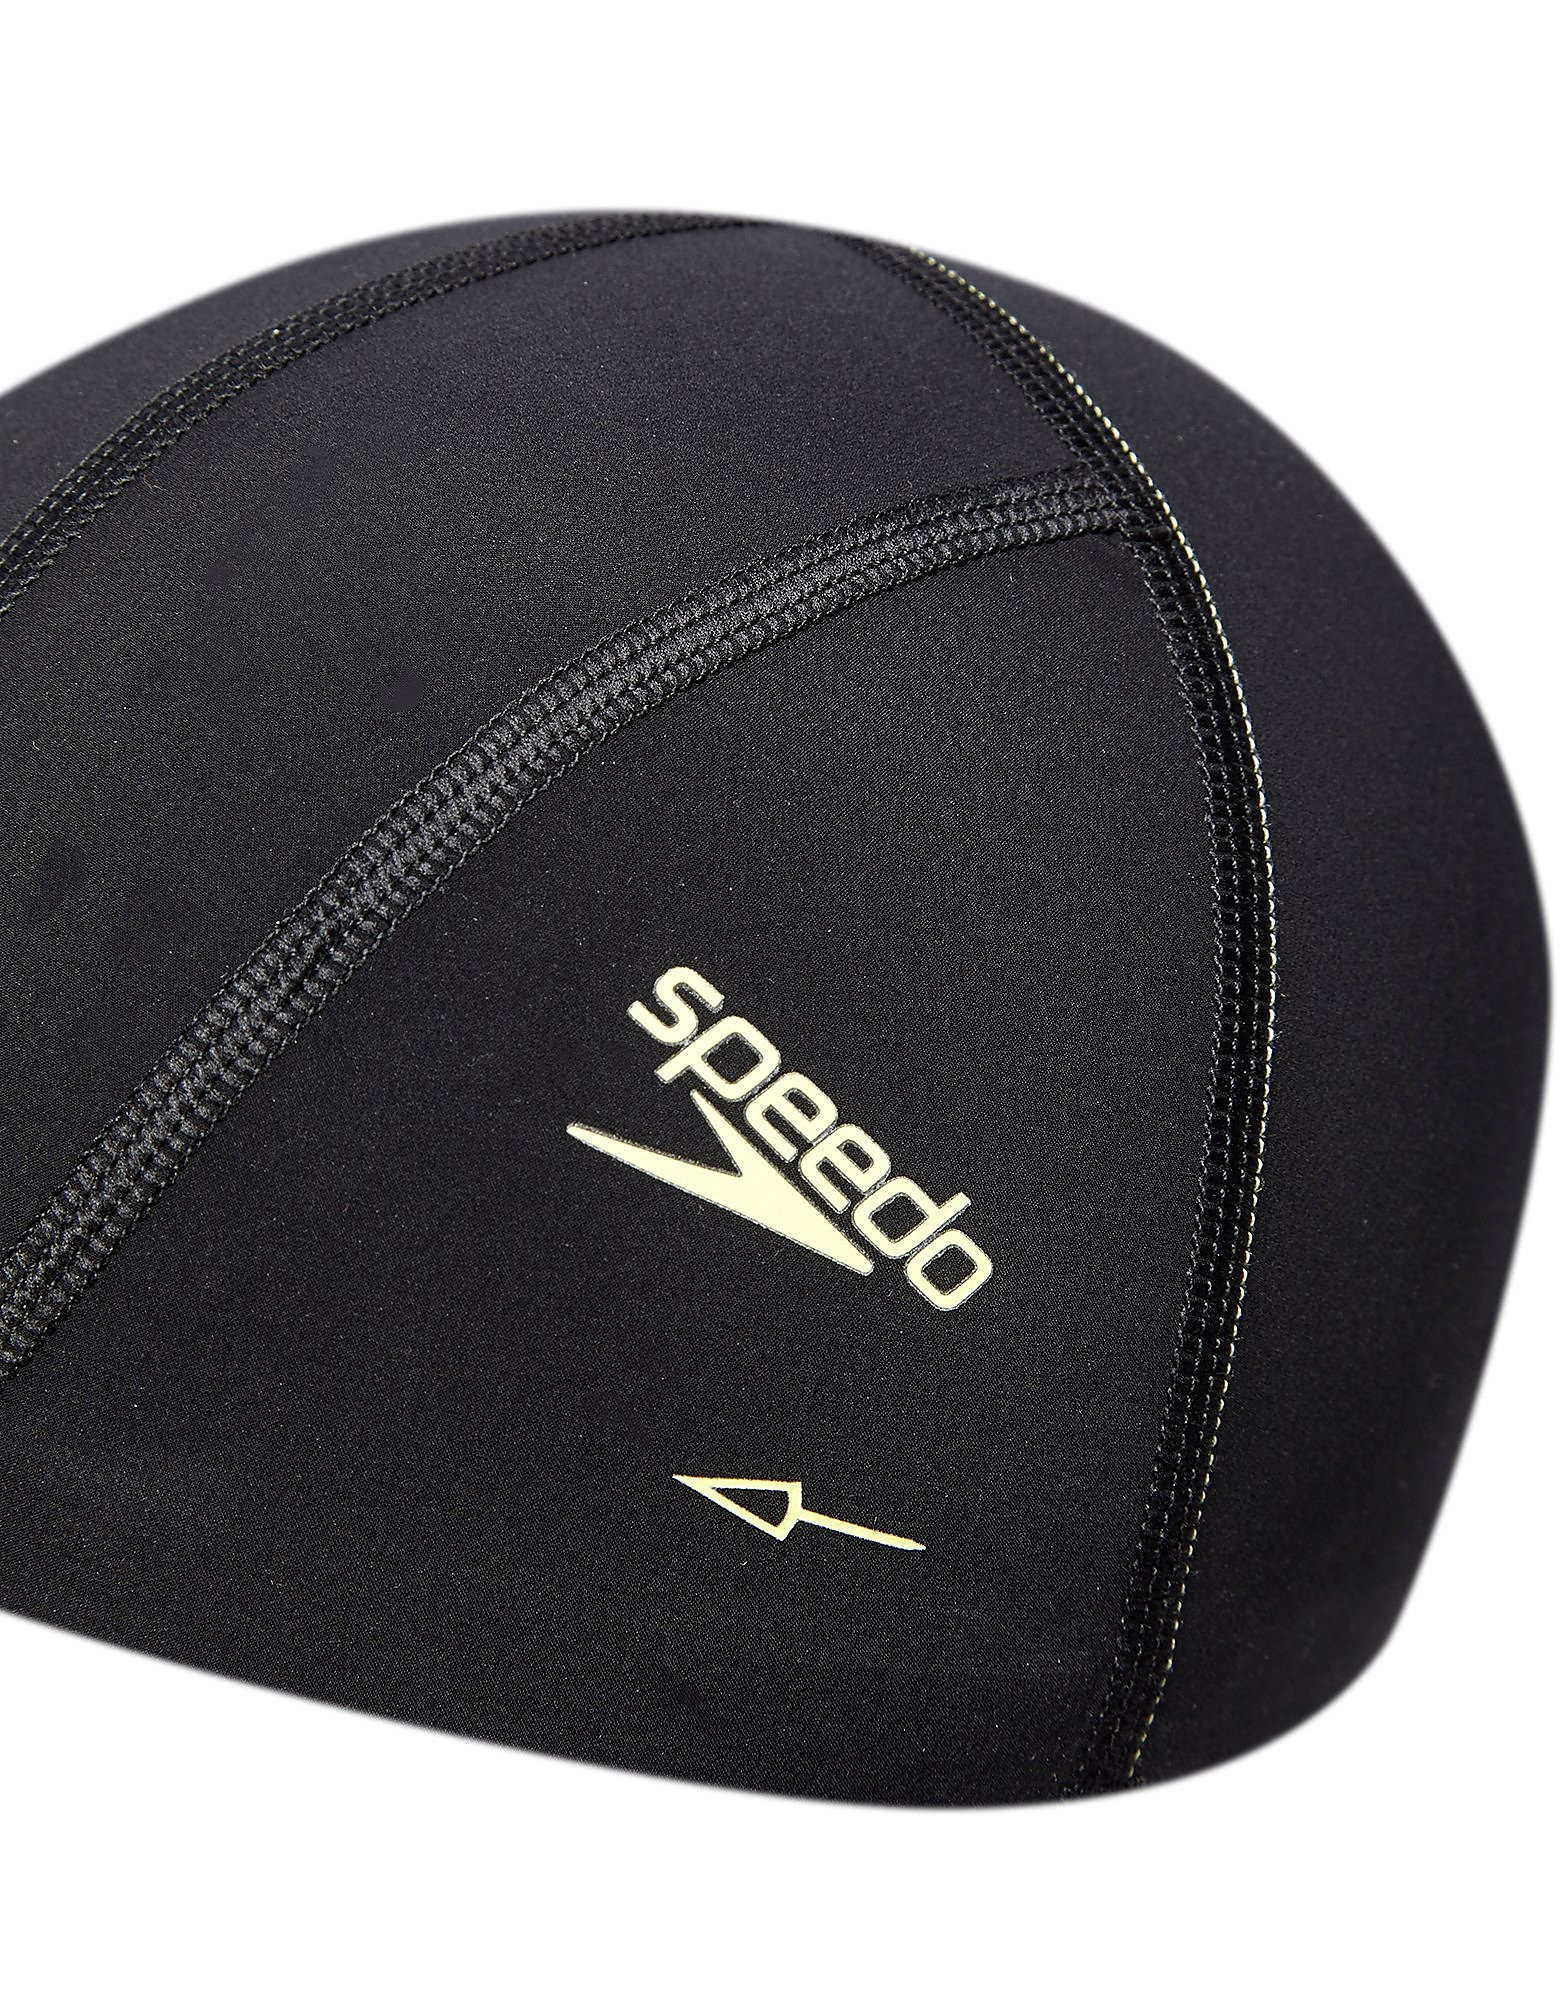 Speedo Fastskin3 Hair Management System